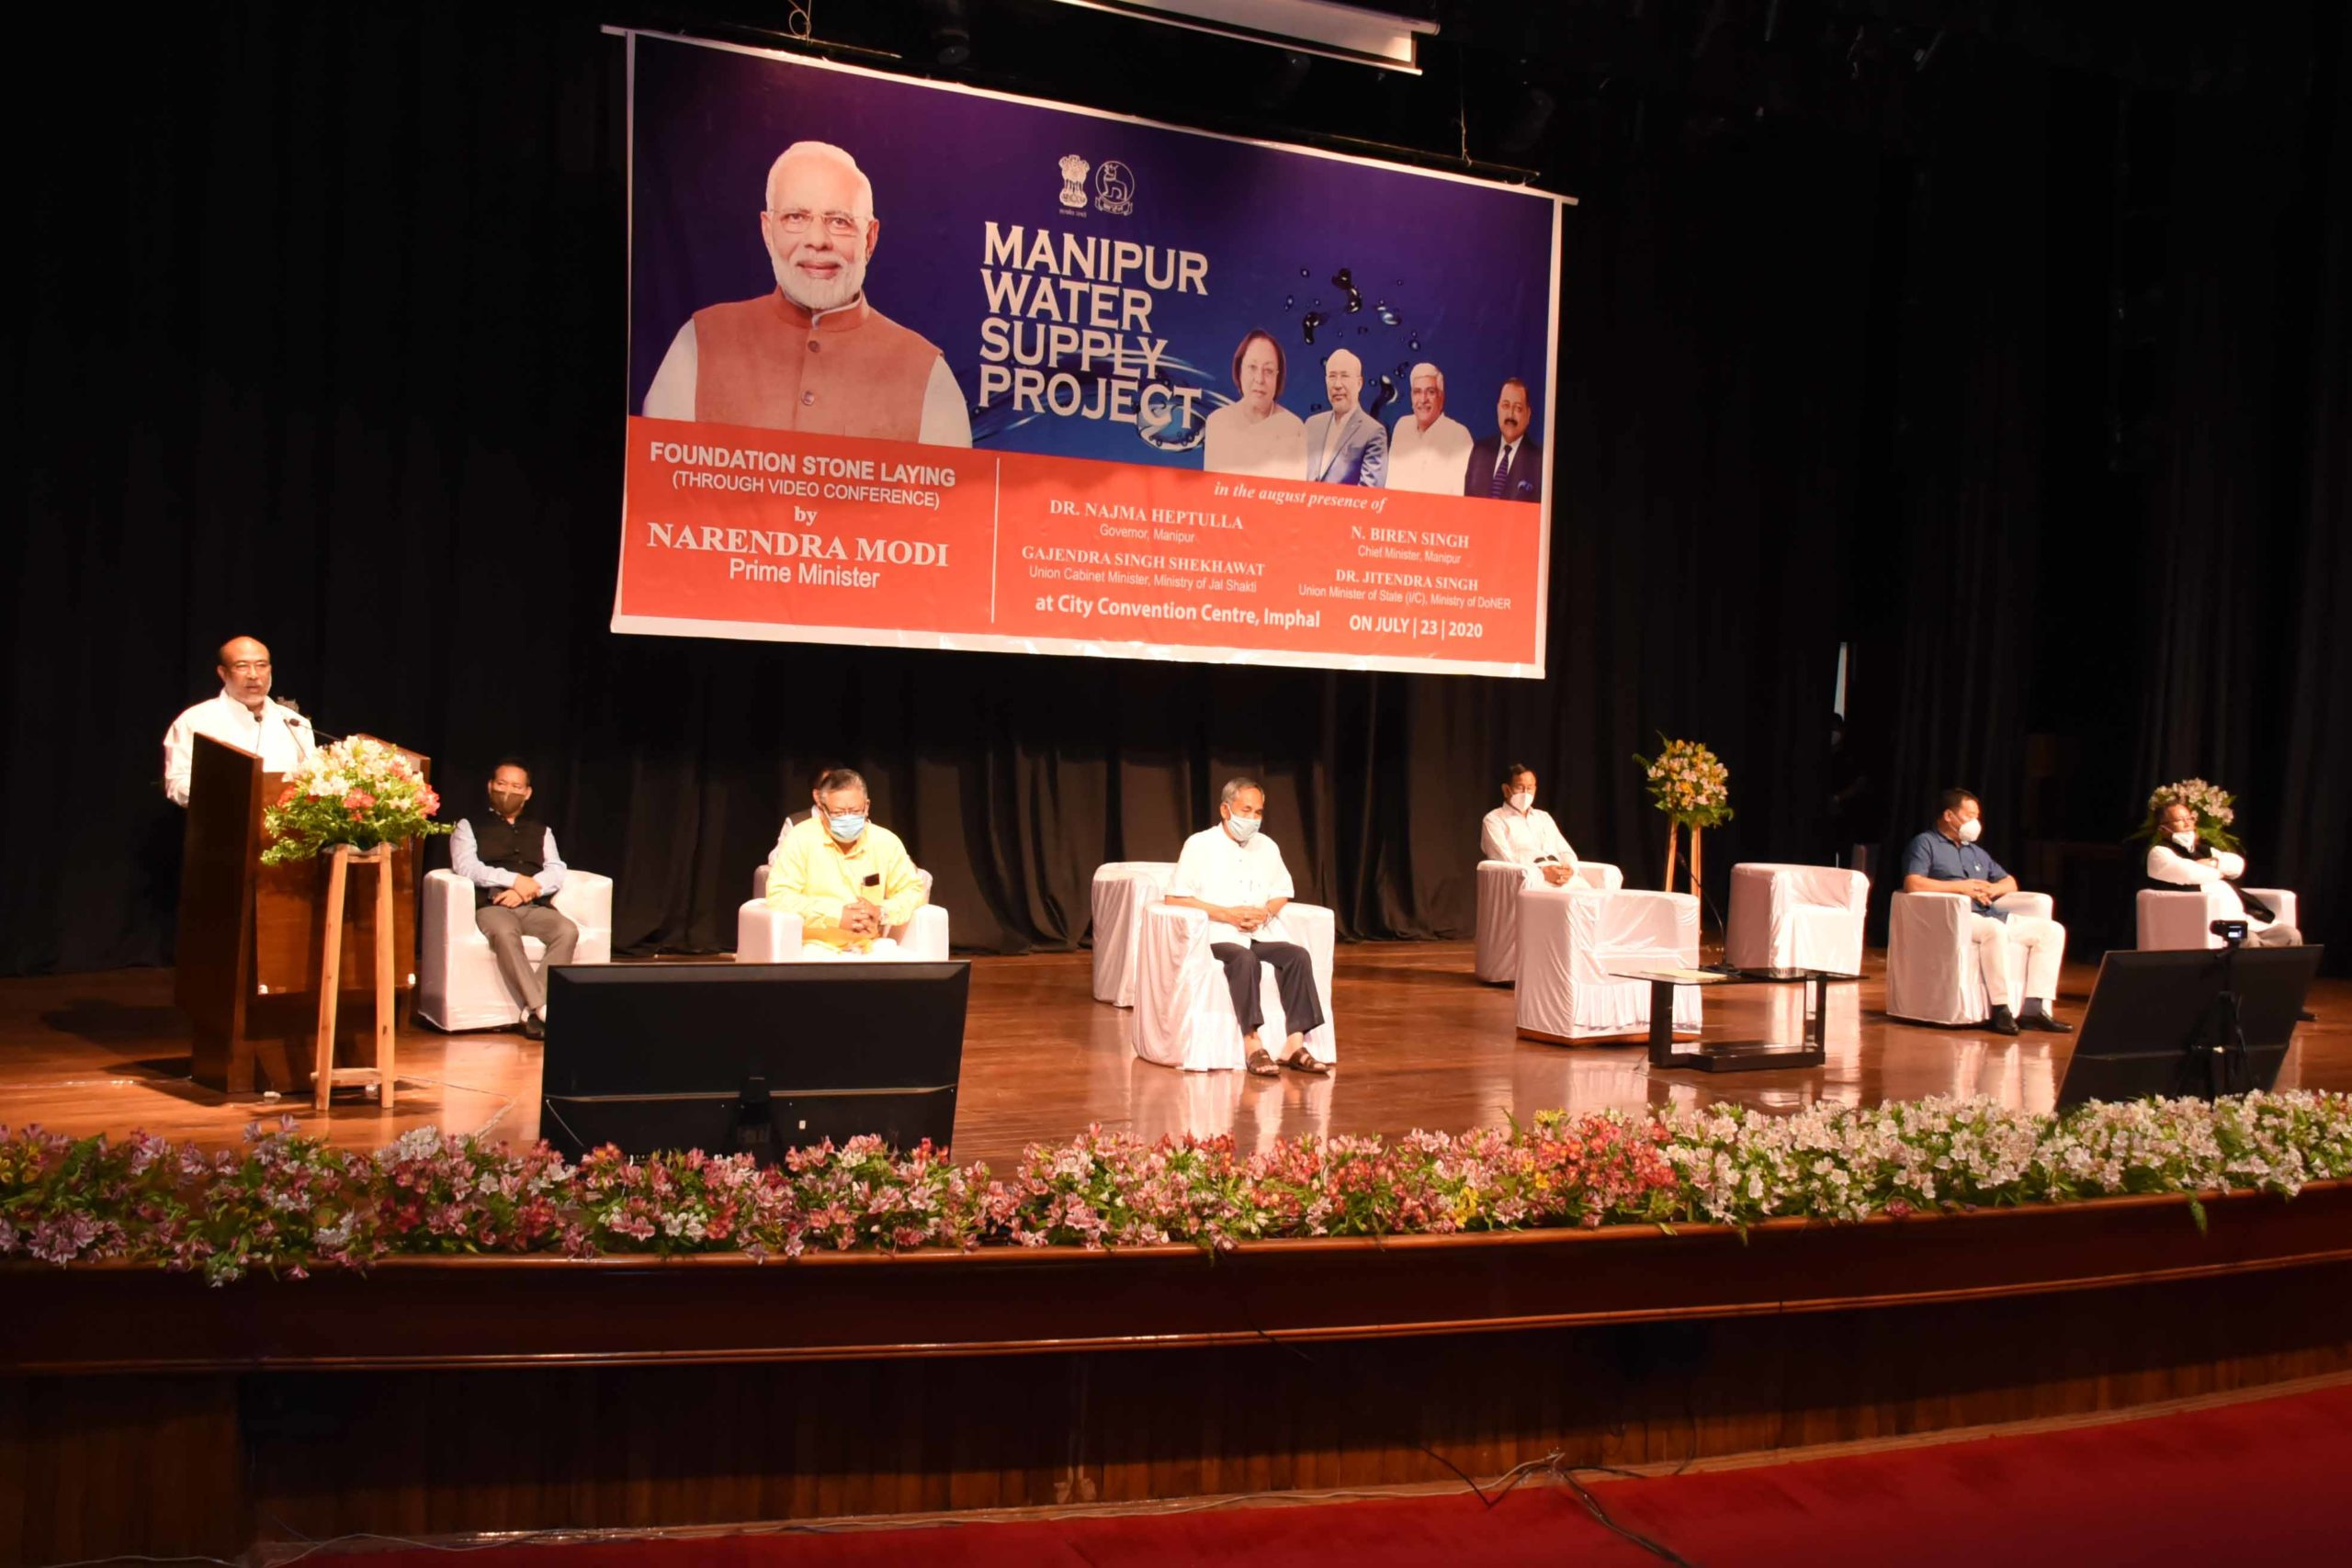 PM lays foundation stone for Manipur water supply project